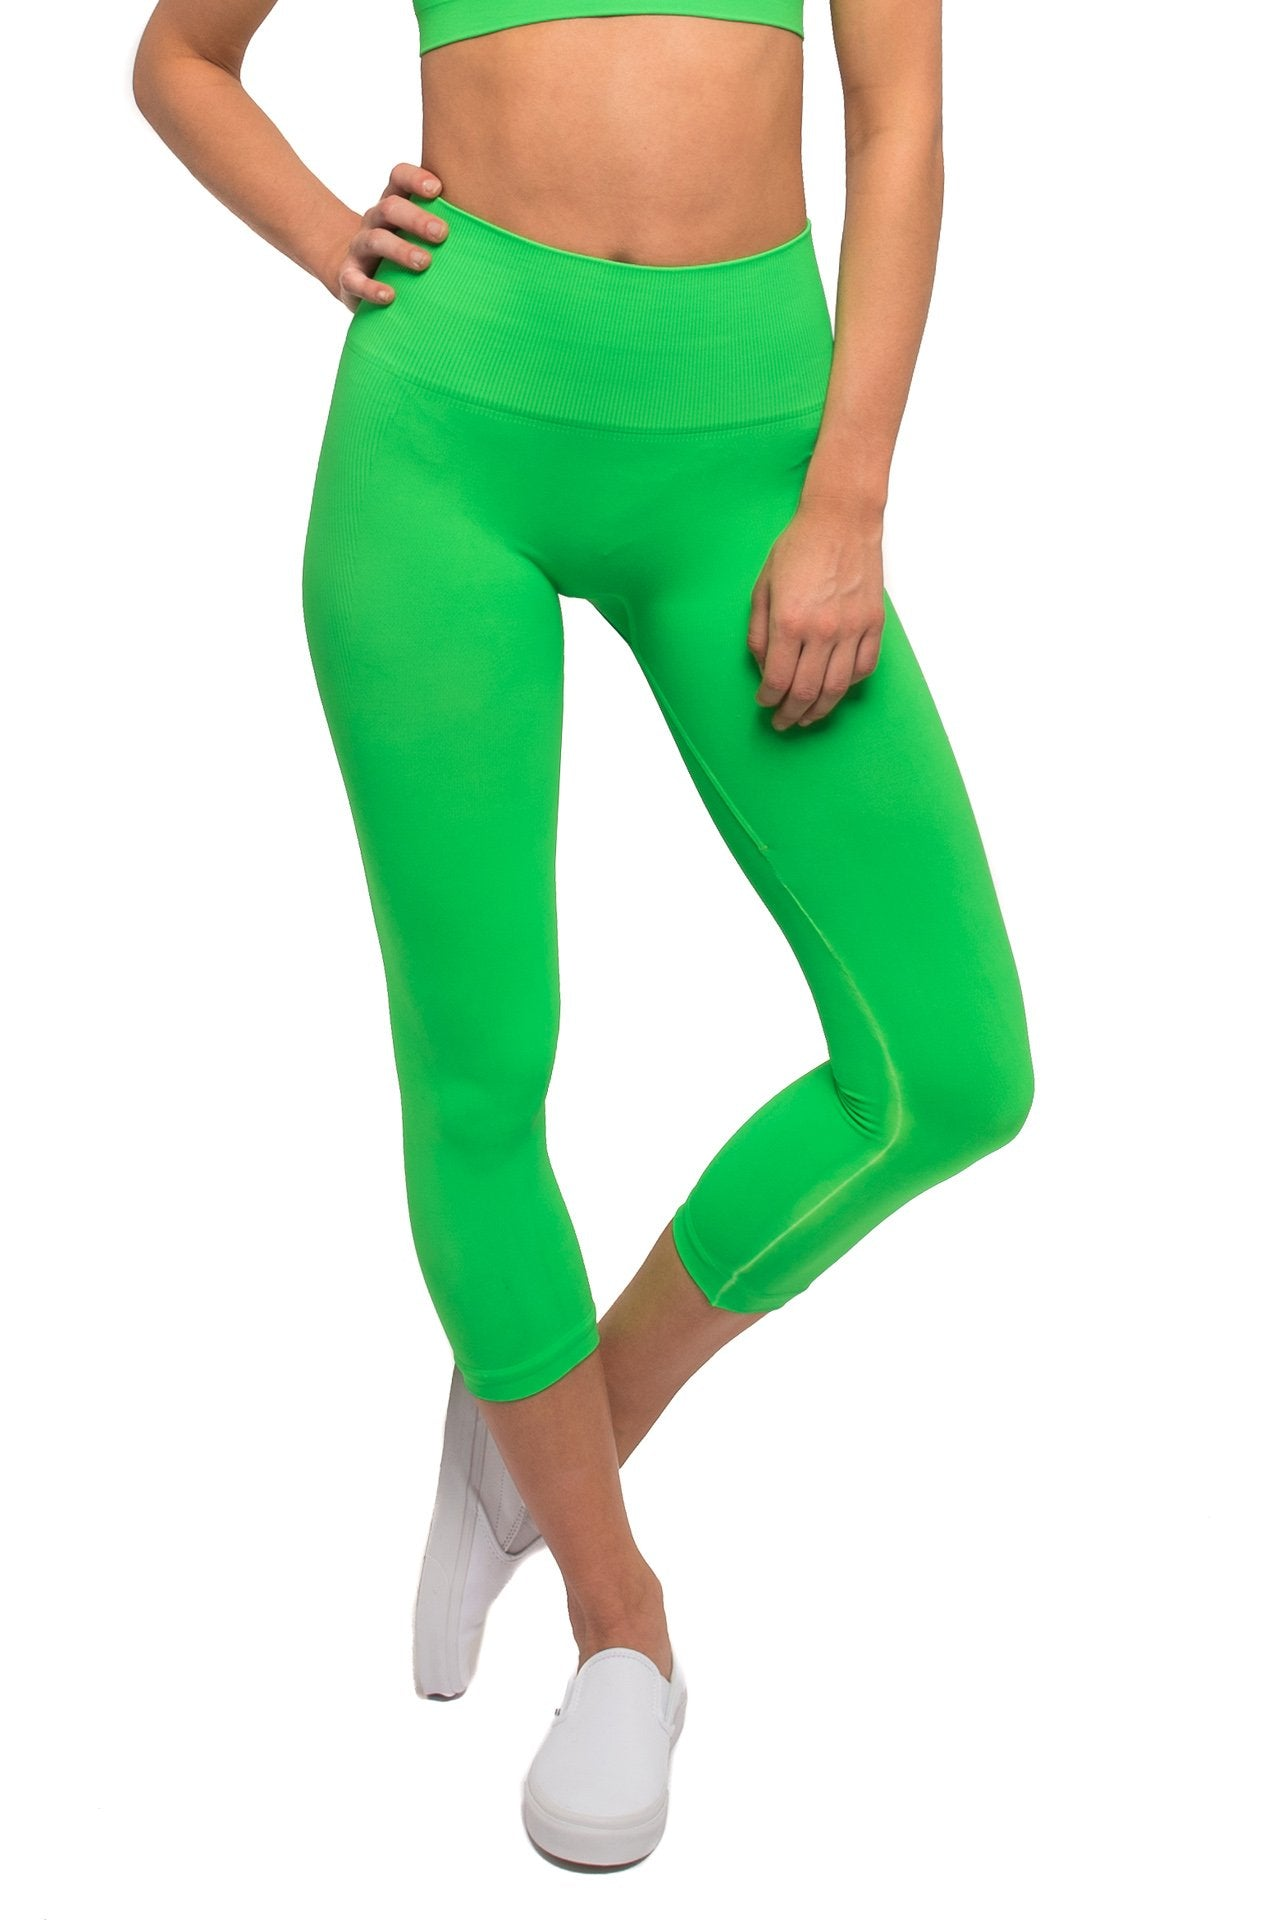 071f2779ba32c LA Collective | Morgan Stewart Sport | Jean-Michel legging Neon Green